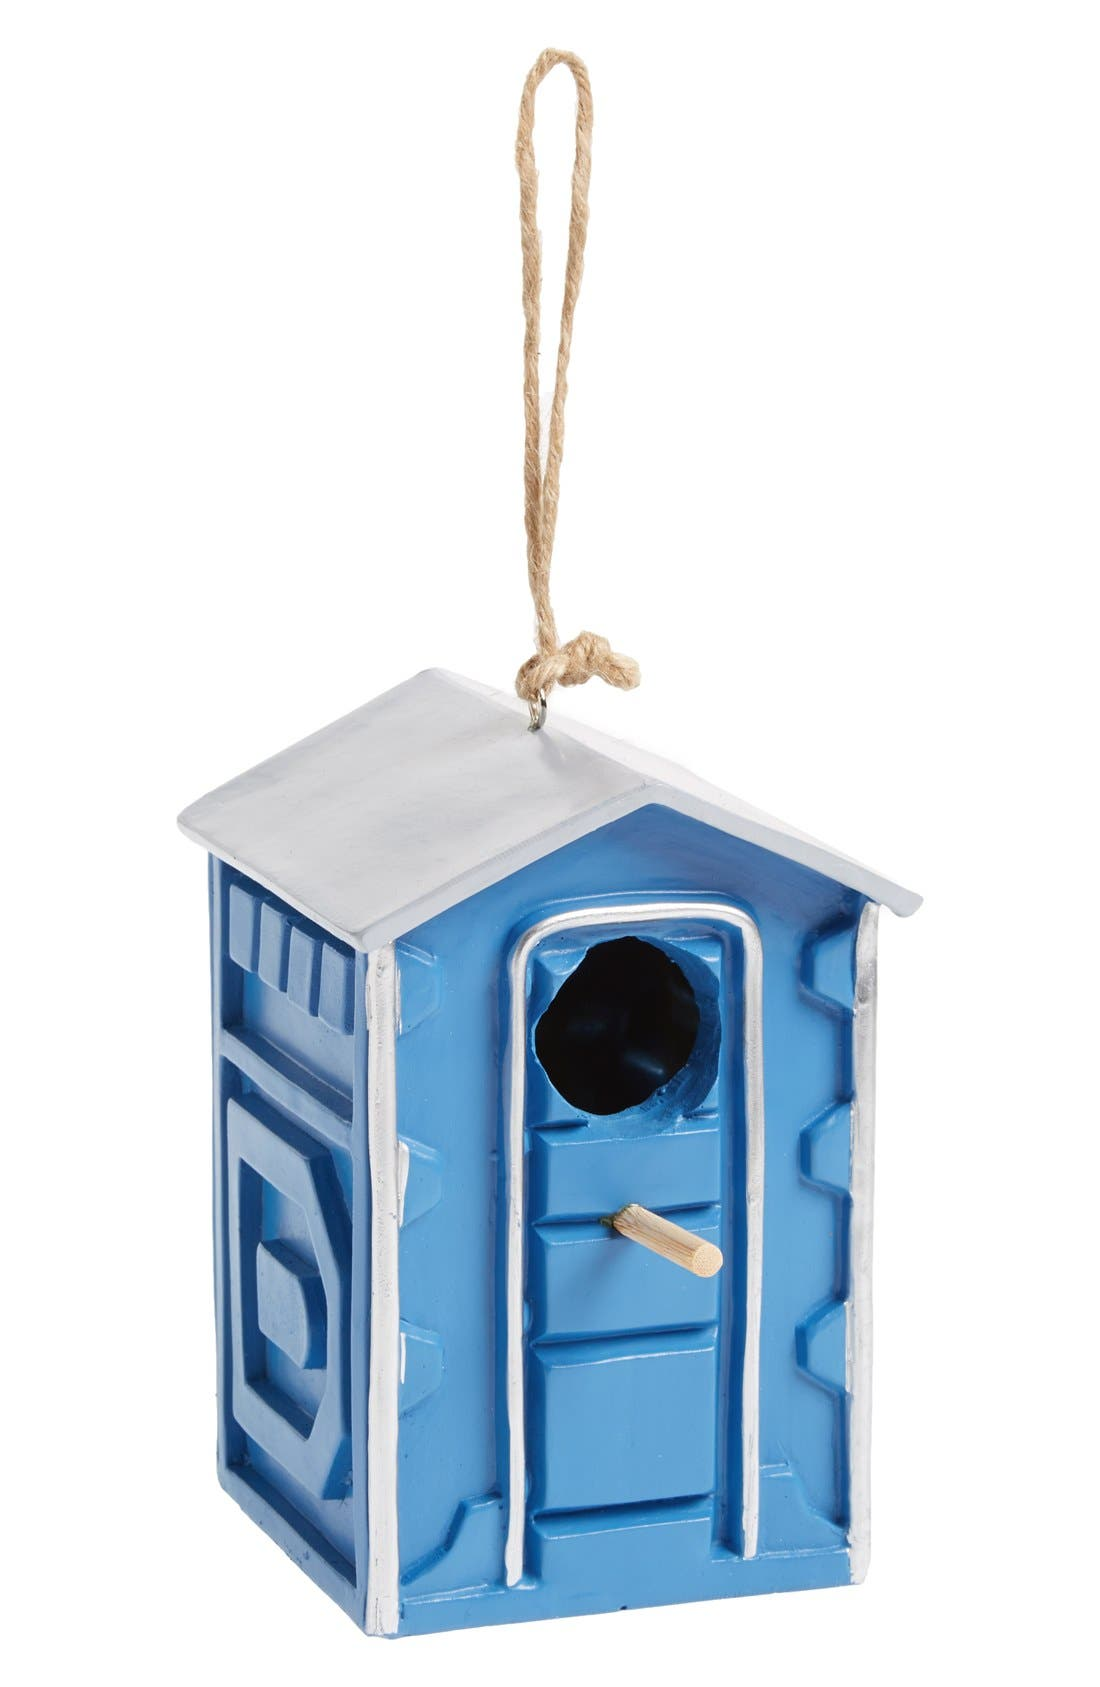 Main Image - Big Mouth Toys 'Portable Potty' Birdhouse